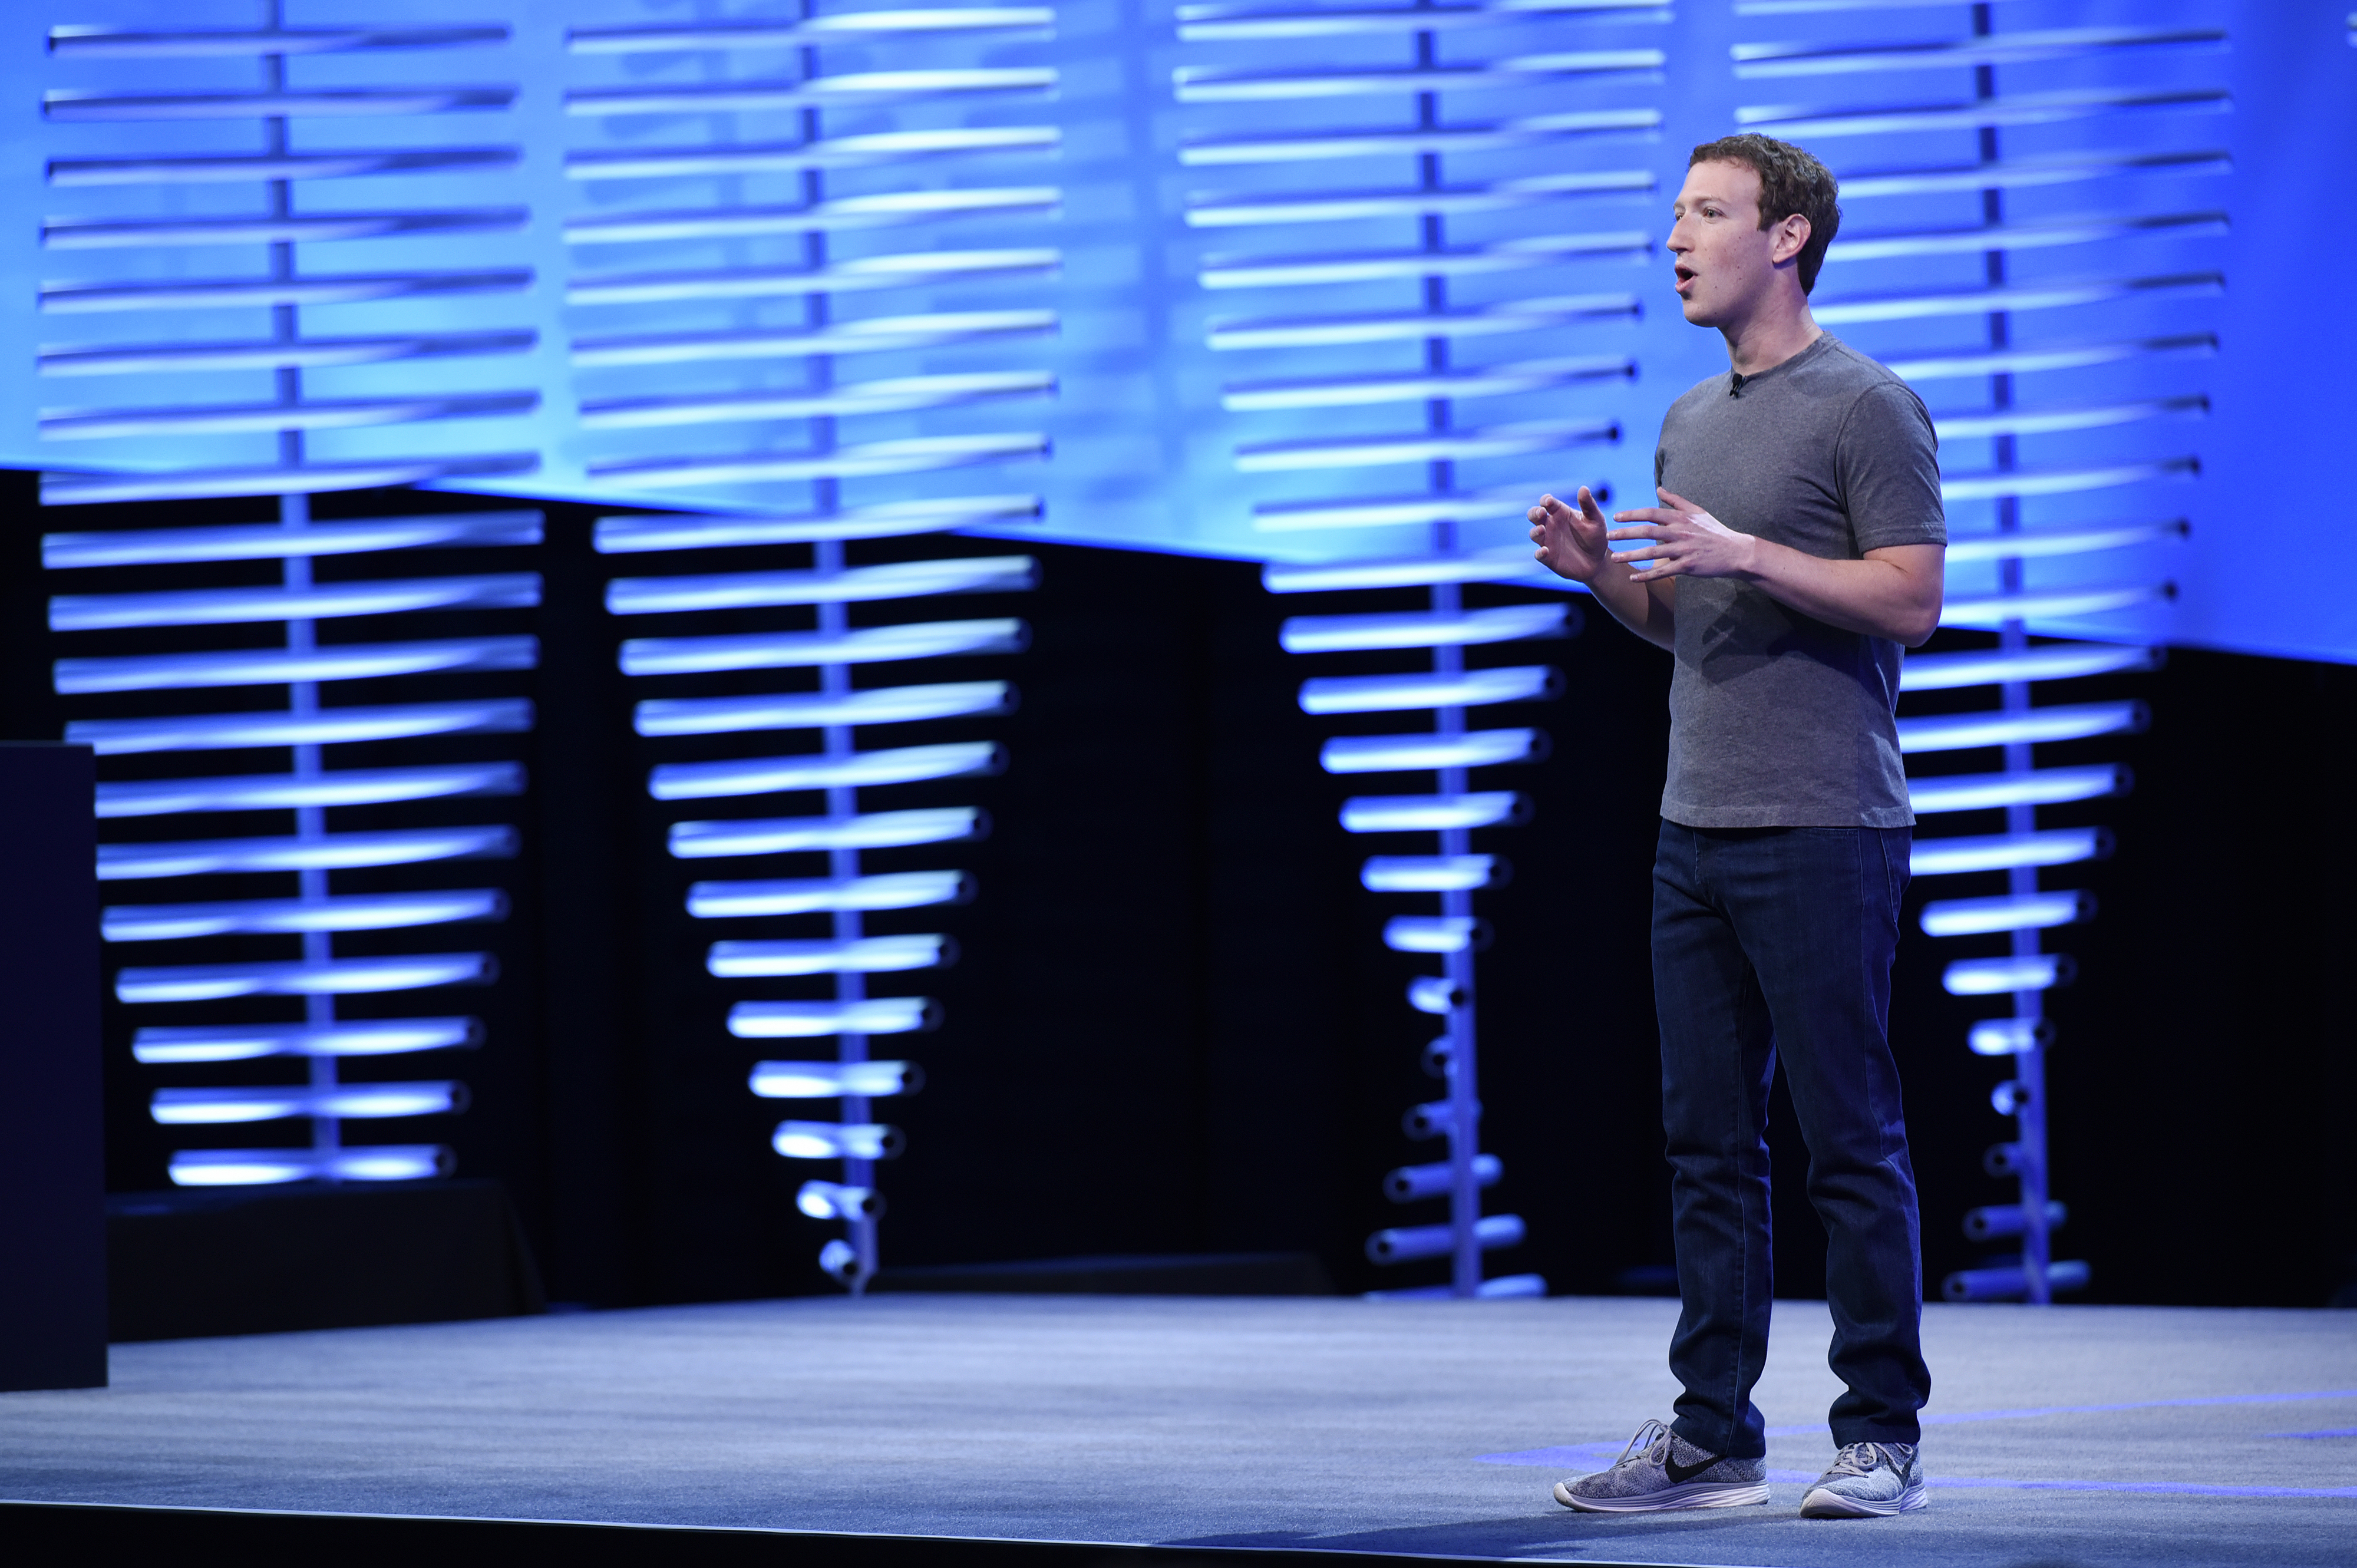 Mark Zuckerberg, founder and chief executive officer of Facebook Inc., speaks during the Facebook F8 Developers Conference in San Francisco on April 12, 2016.